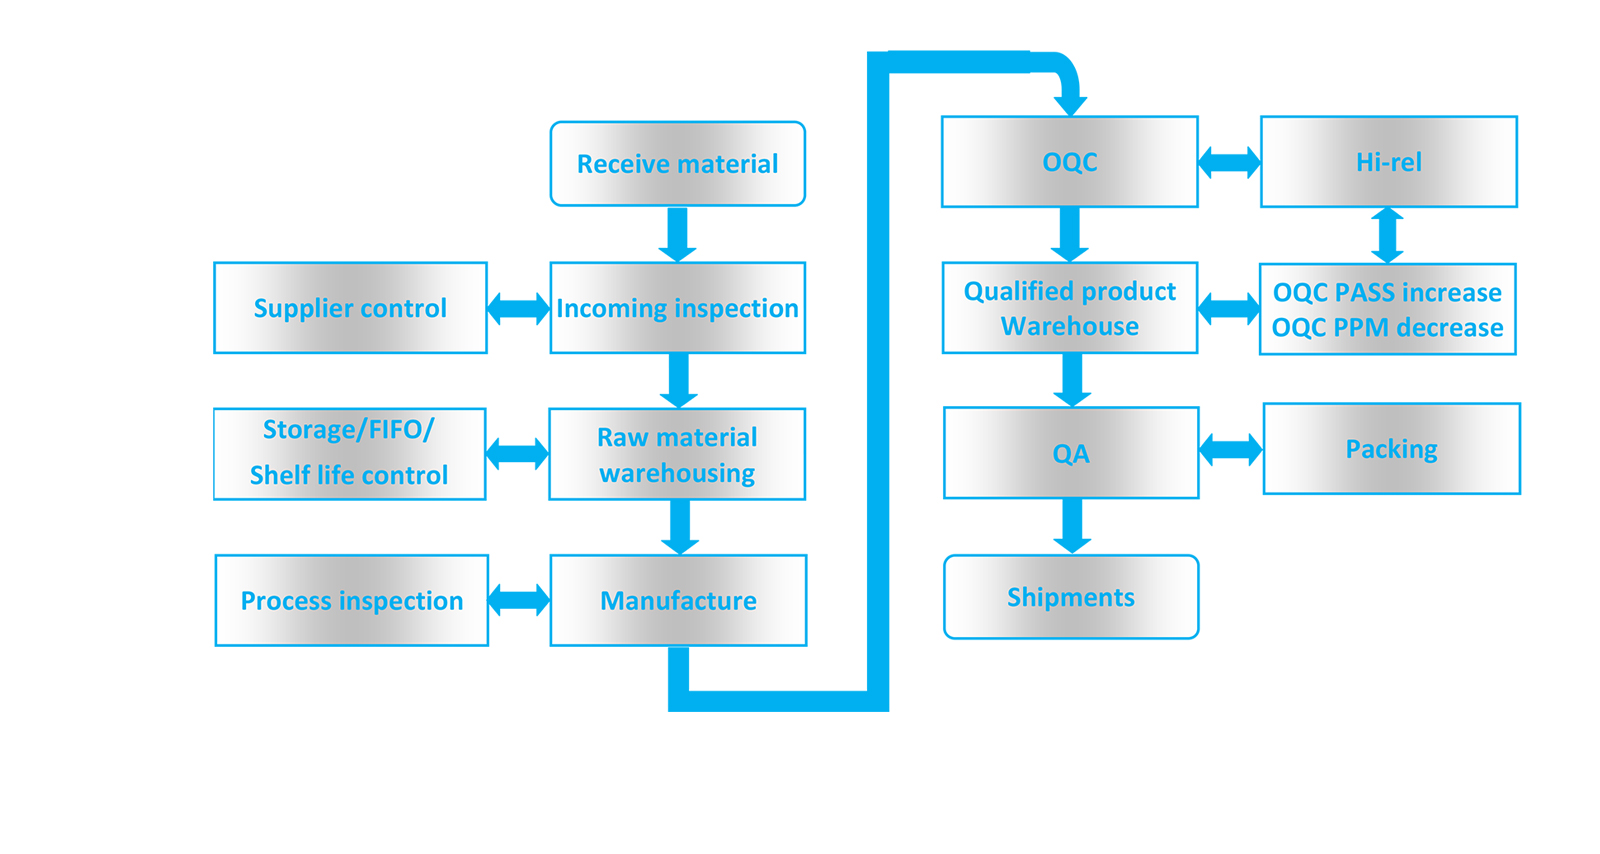 Jgd quality control quality management processes geenschuldenfo Image collections